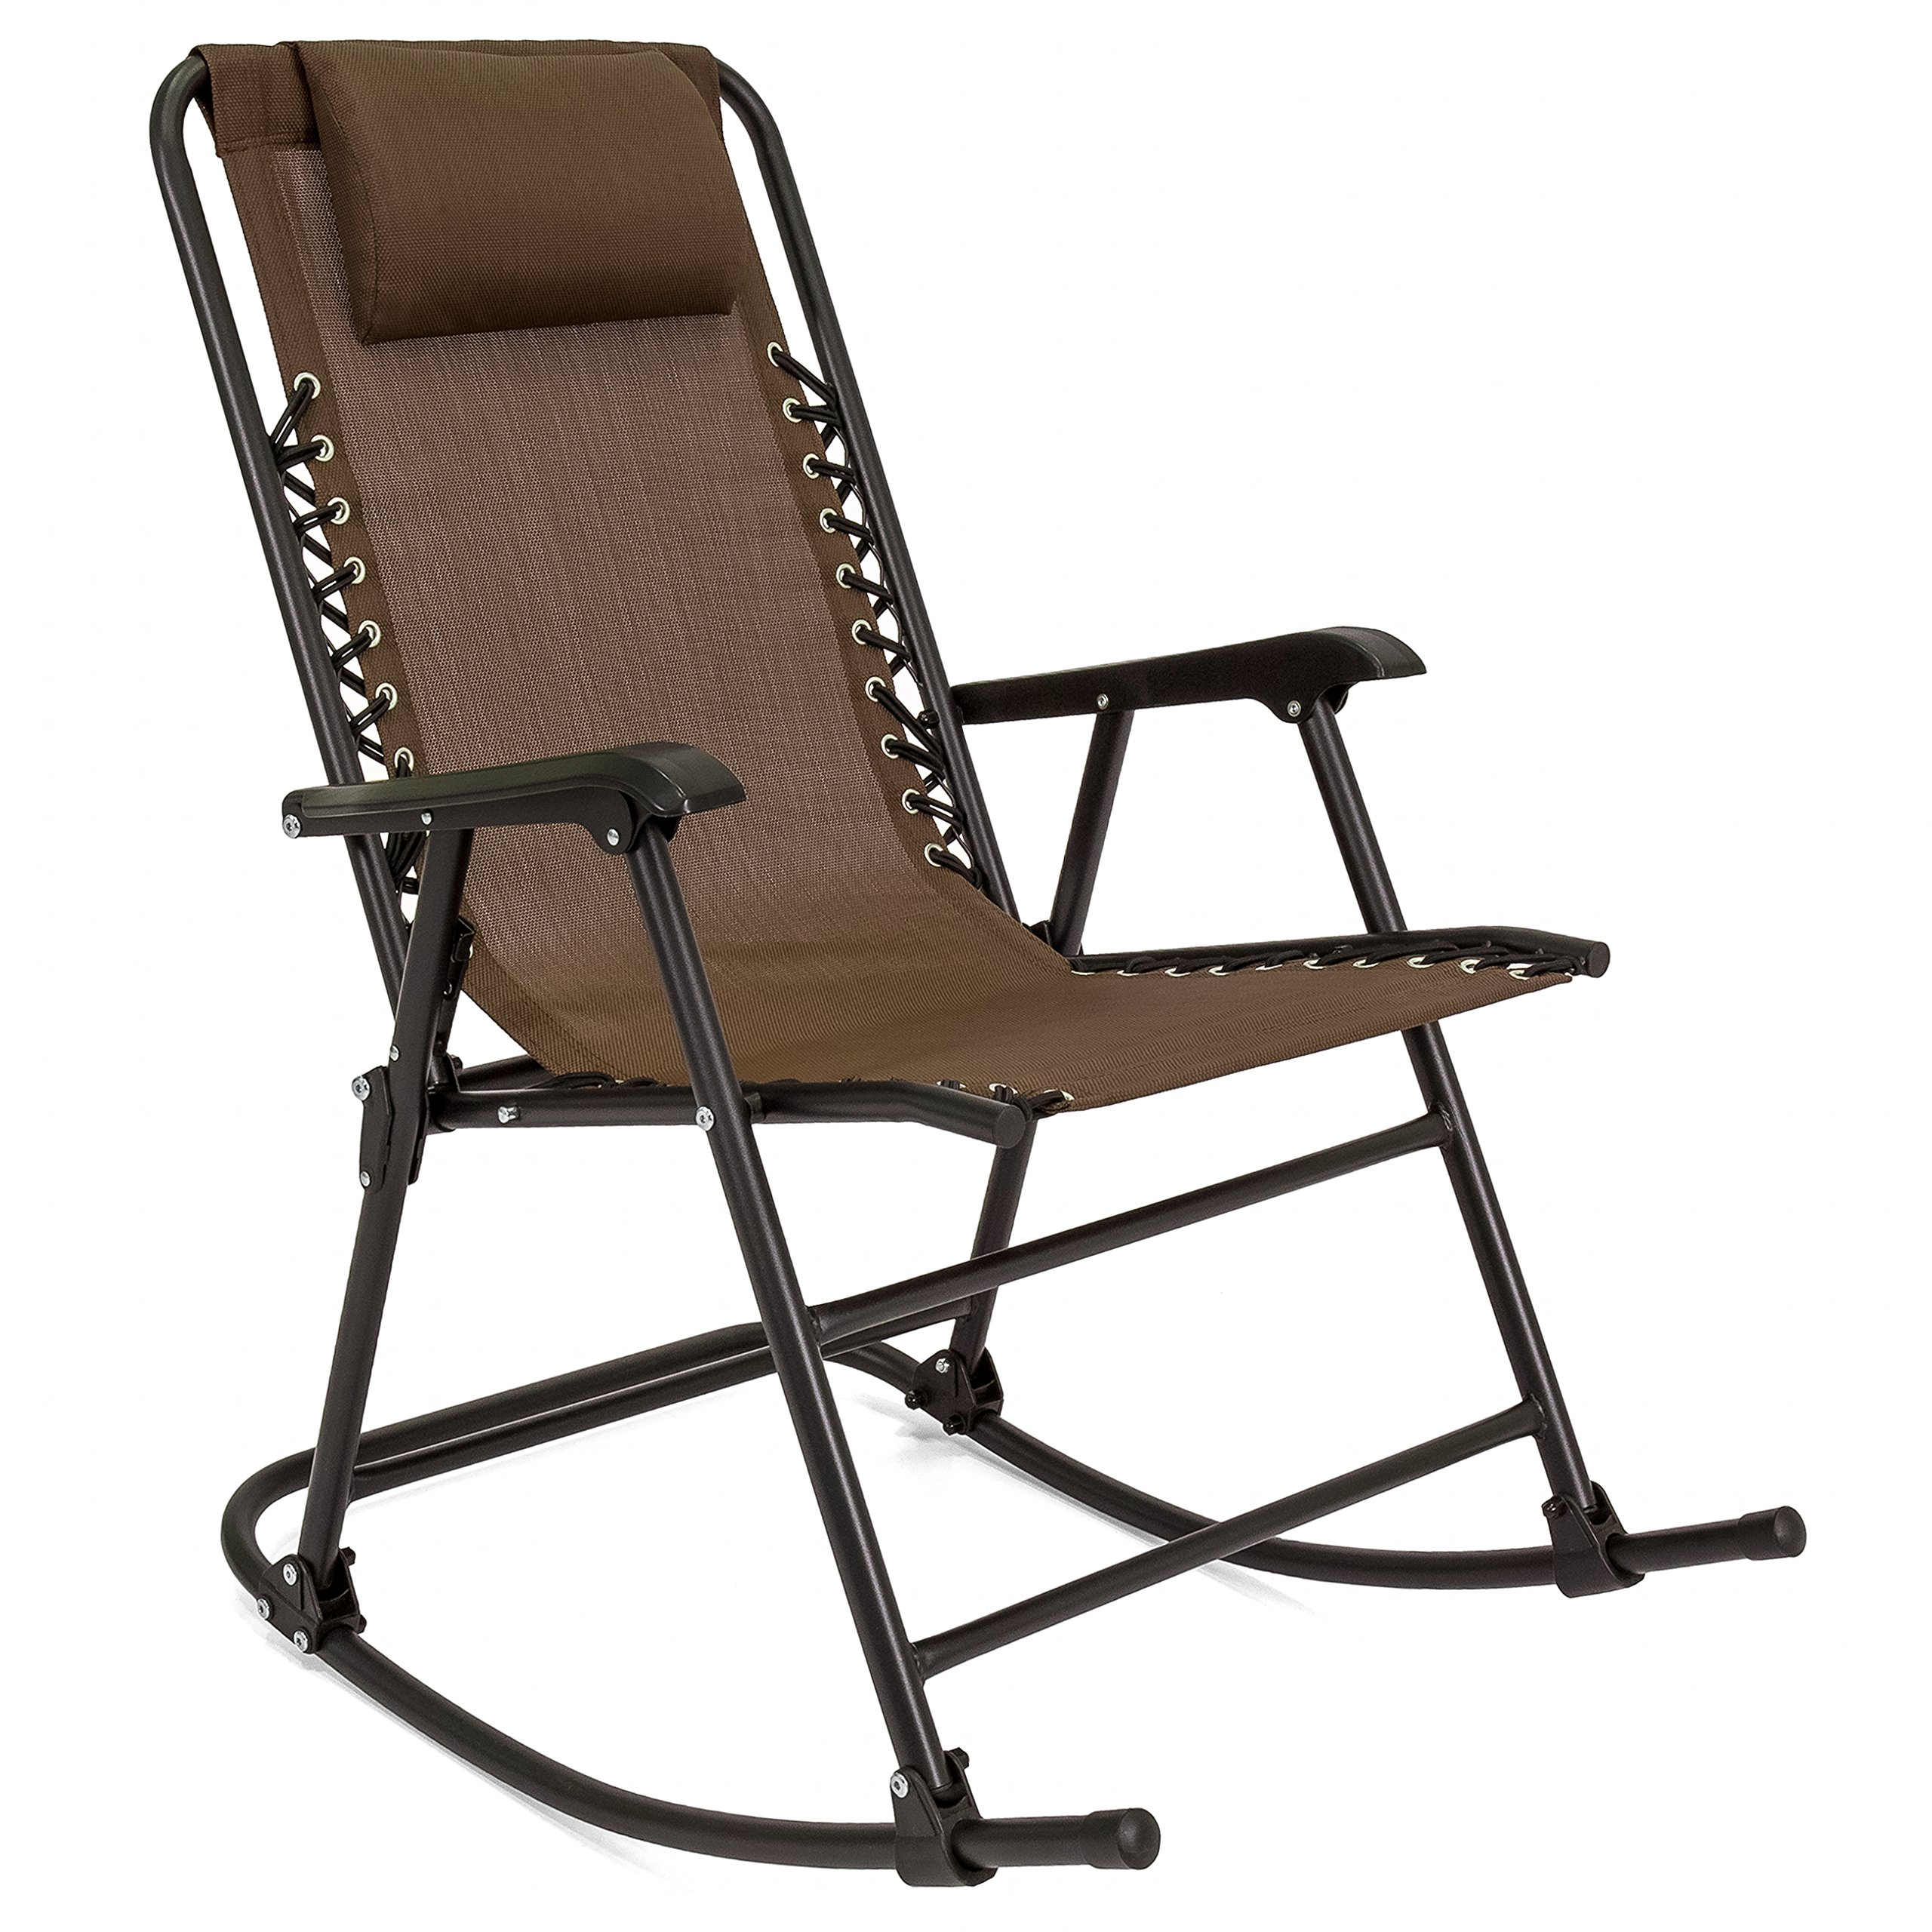 Best Choice Products Foldable Zero Gravity Rocking Patio Recliner Lounge Chair w/Headrest Pillow - Brown